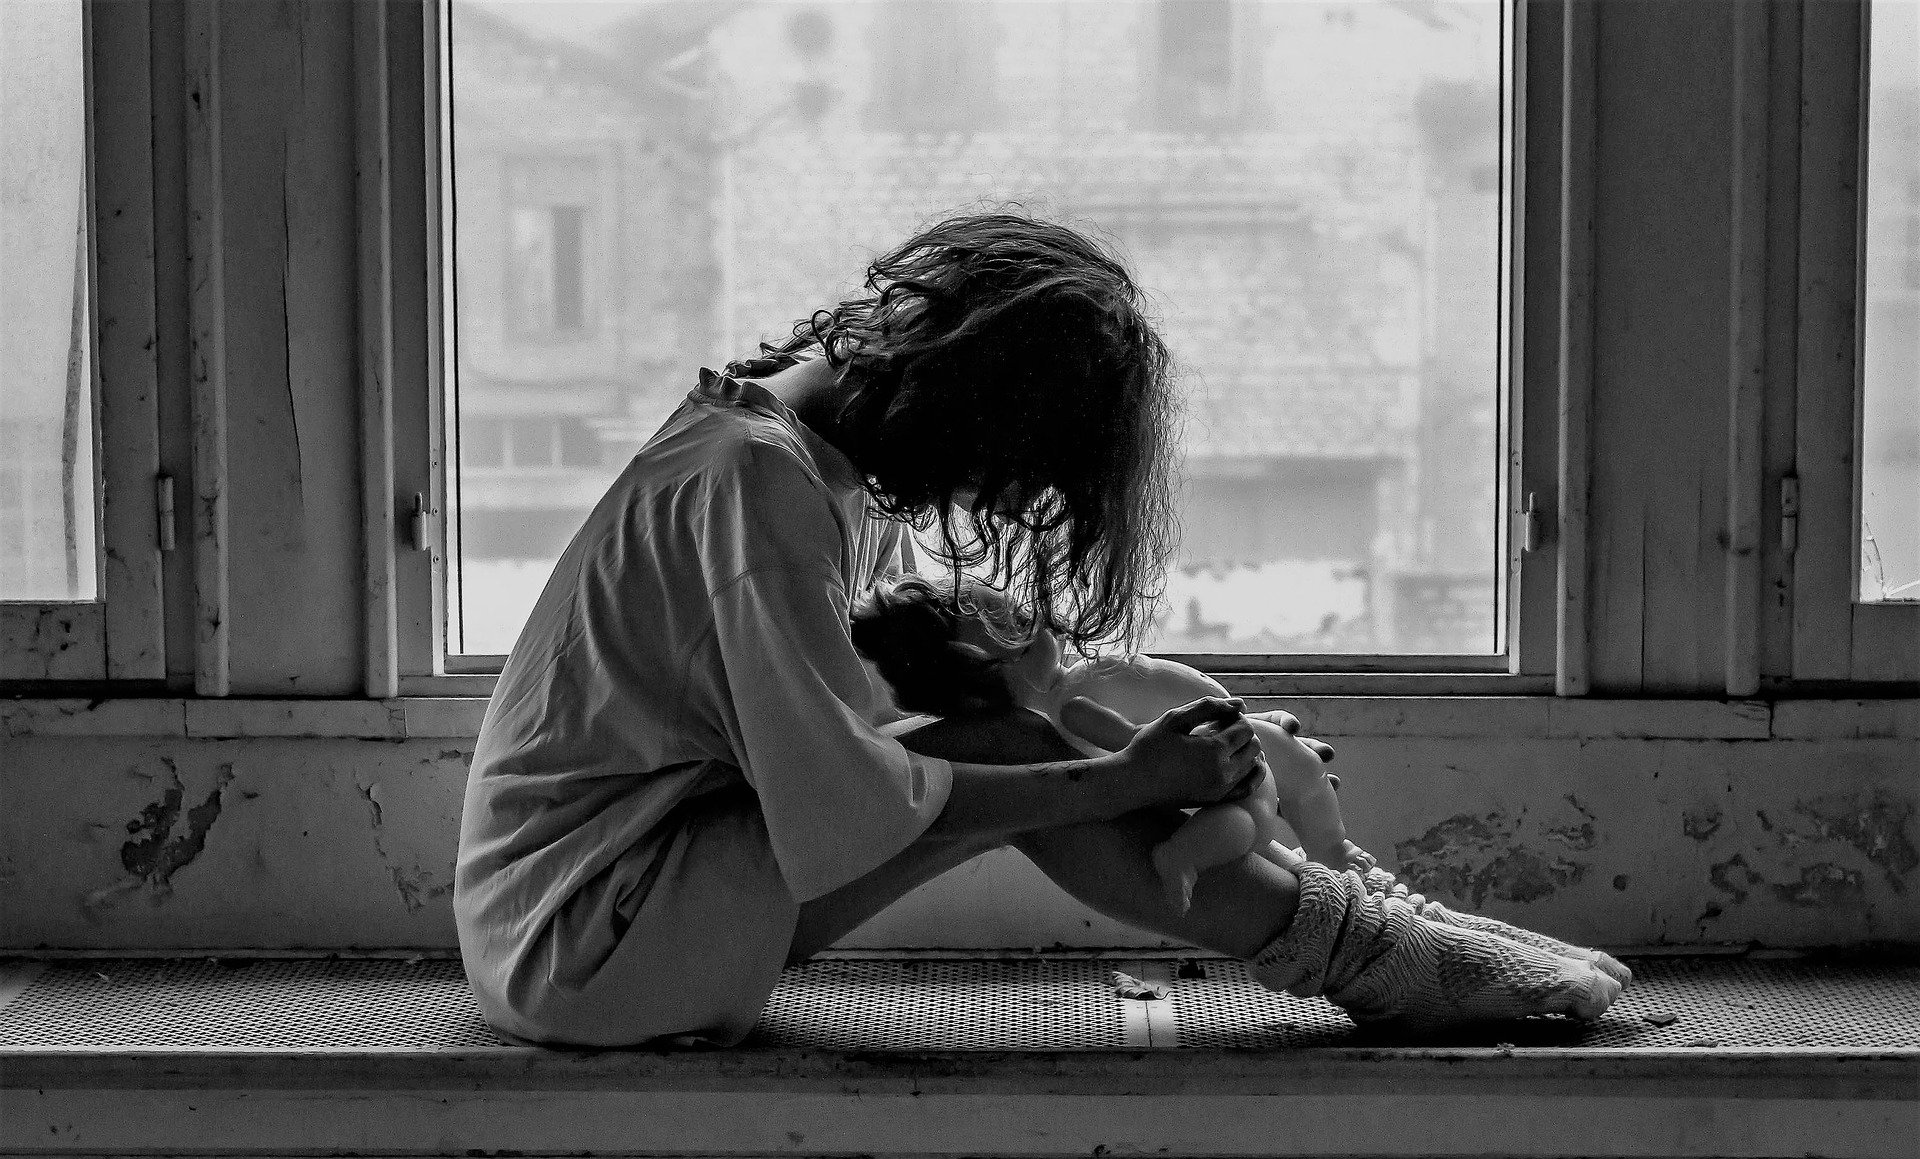 Feeling depressed - grayscale photo of depressed woman sitting next to window holding doll